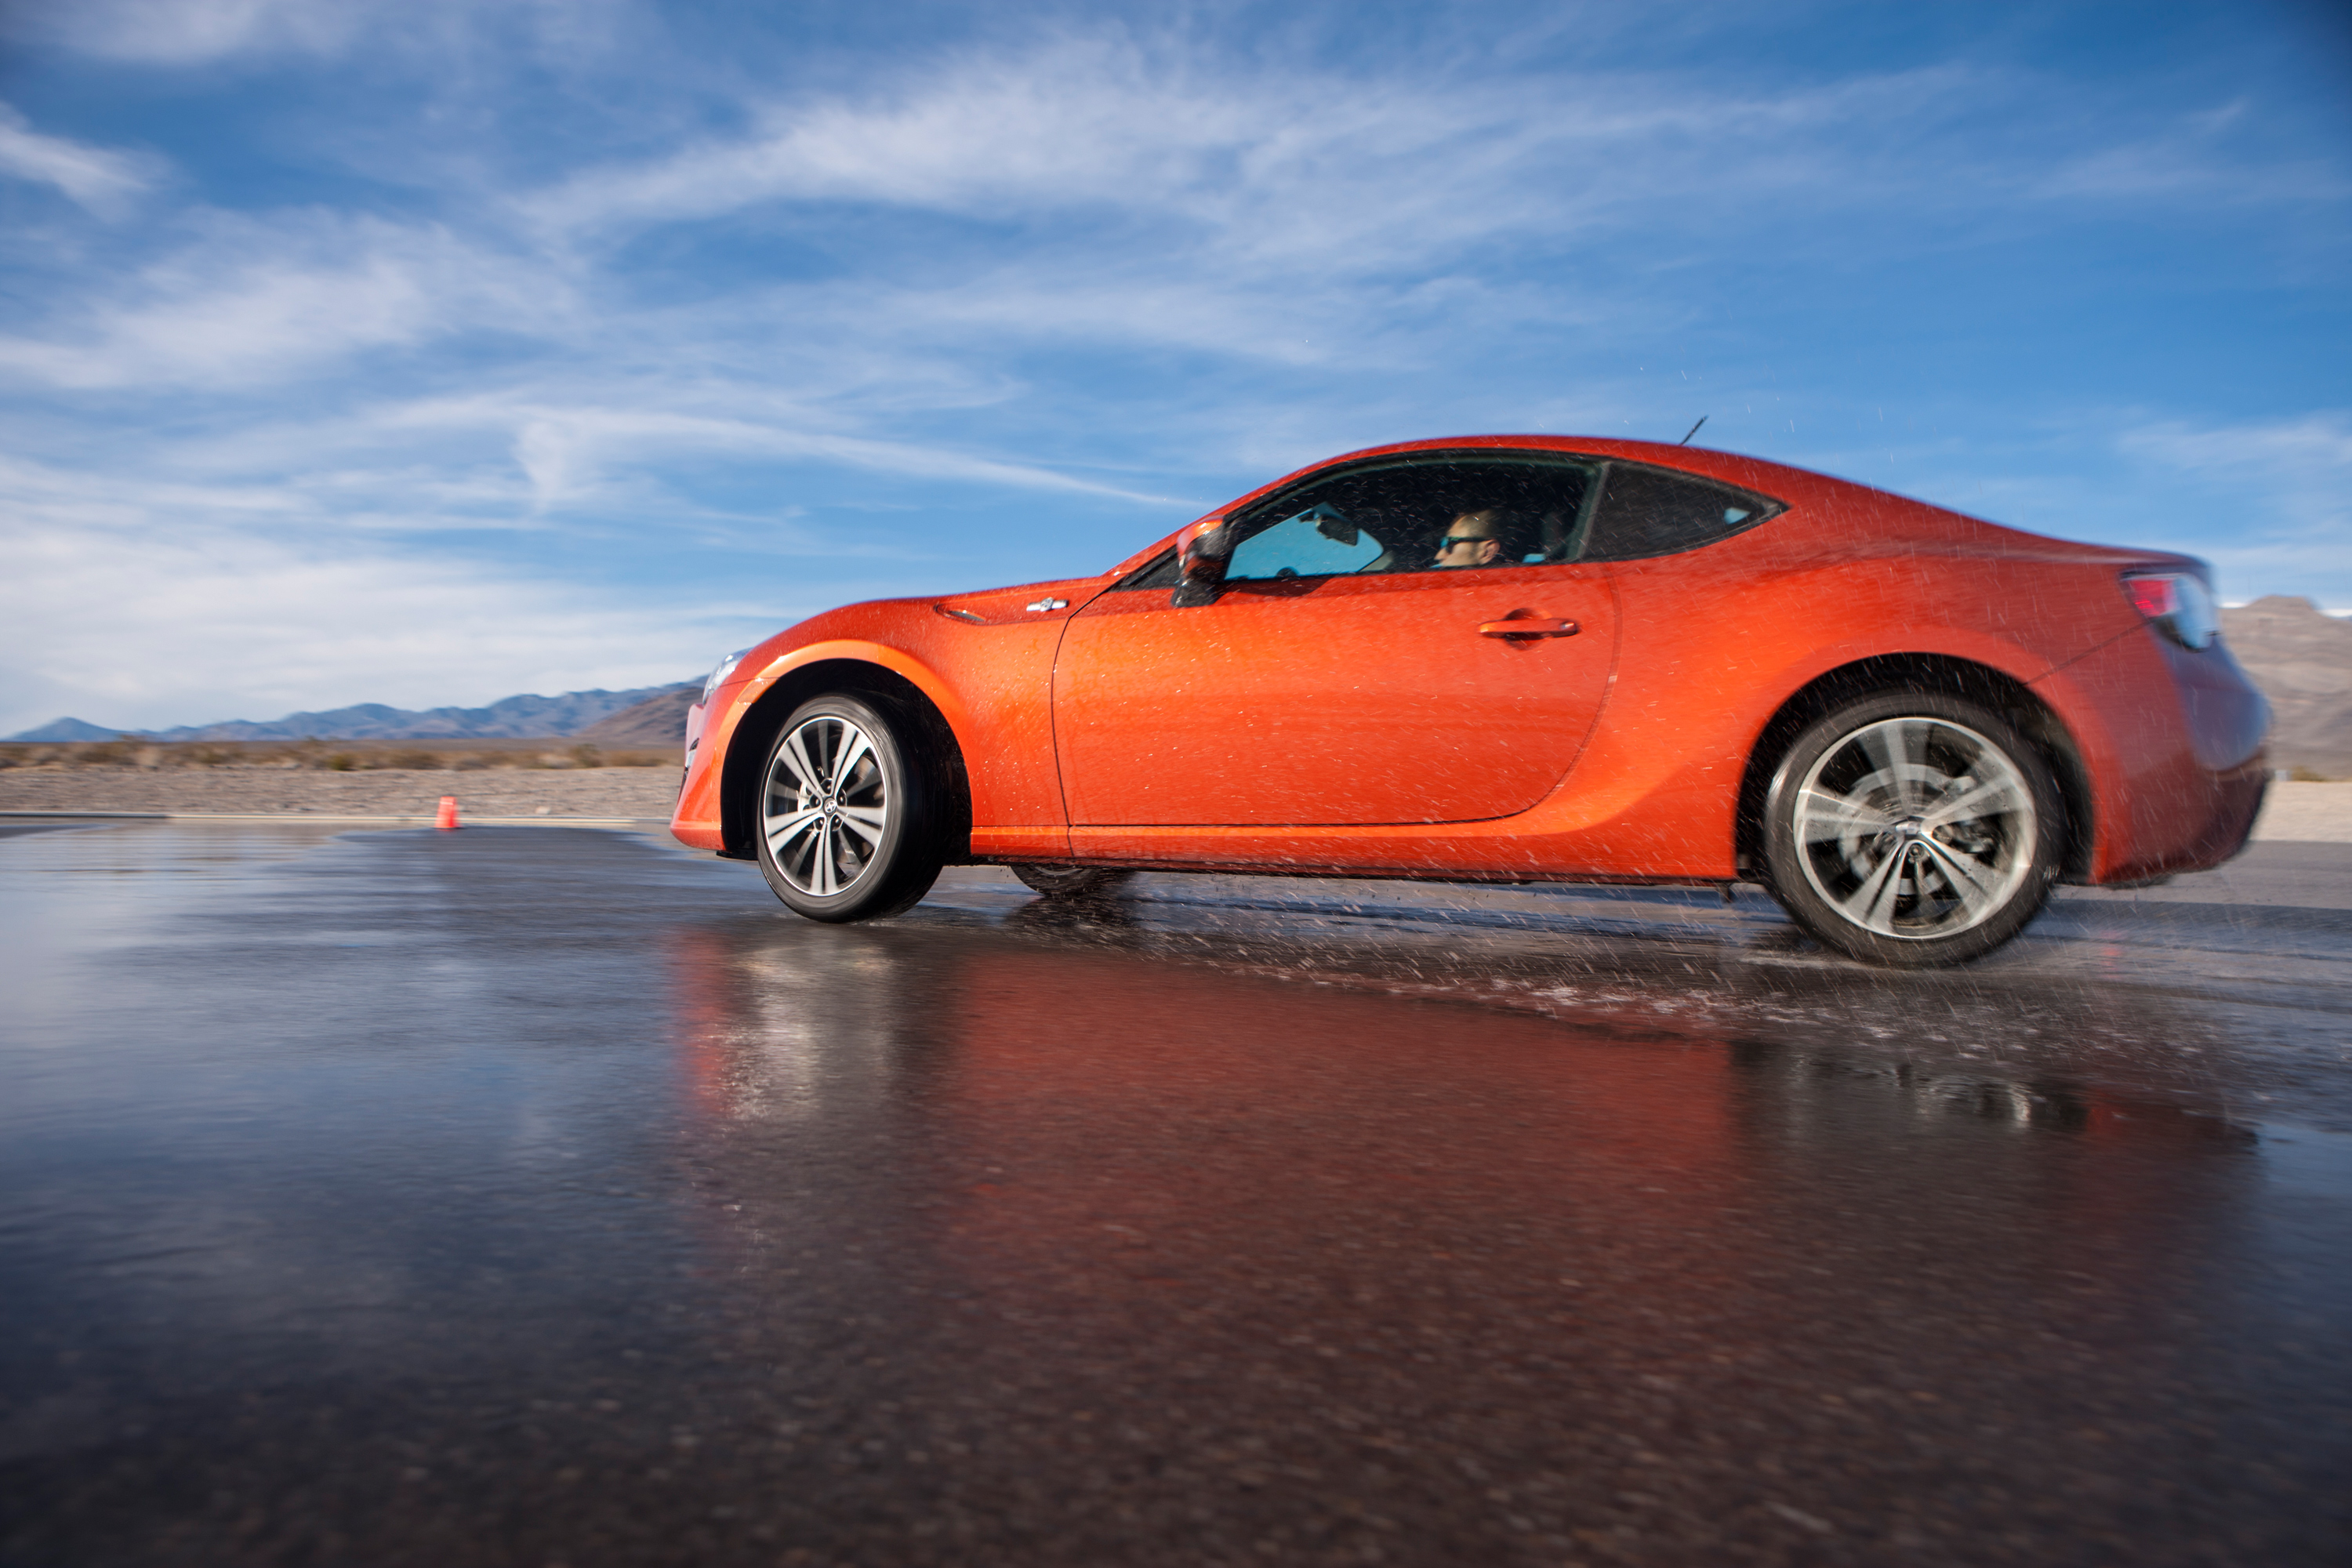 U201cThe Best Sports Car For The Money Award Is A Testament To The Incredibly  Fun And Accessible Sports Car Experience Offered By The Scion FR S,u201d Said  Scion ...